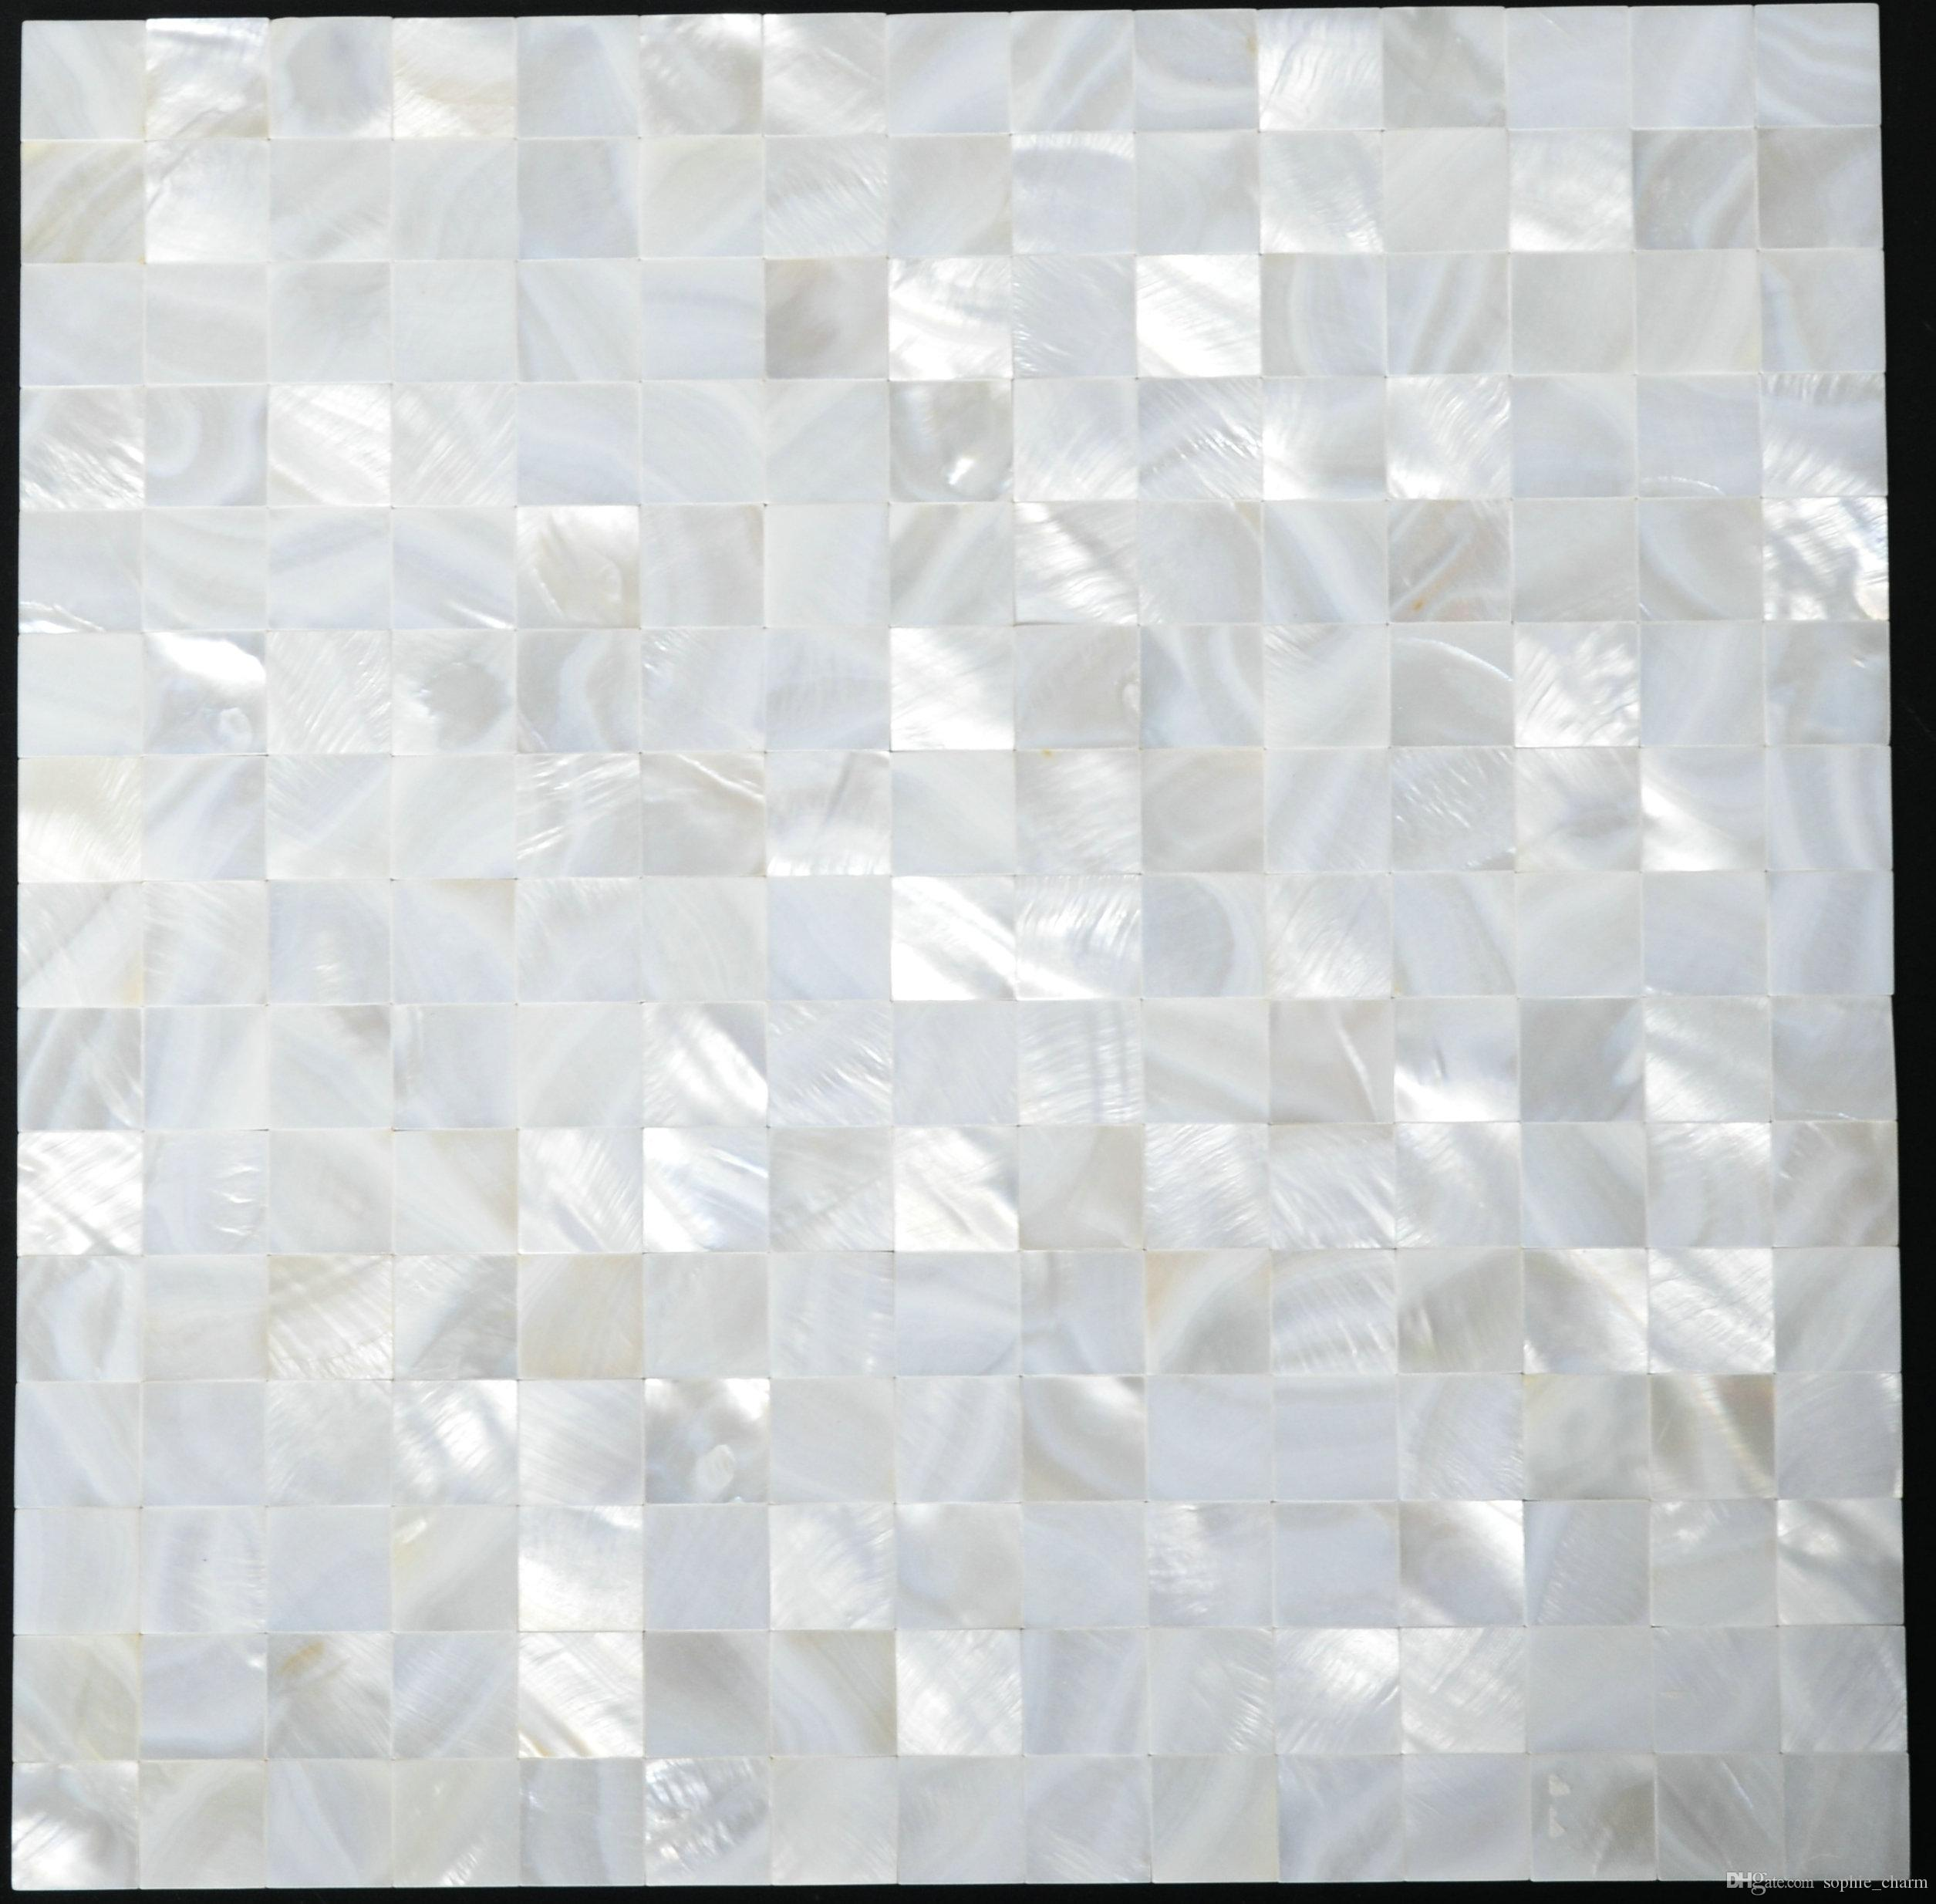 20x20mm Groutless White Mother of pearl tiles shell mosaic backsplash seamless mother of pearl bathroom wall tiles MOP006